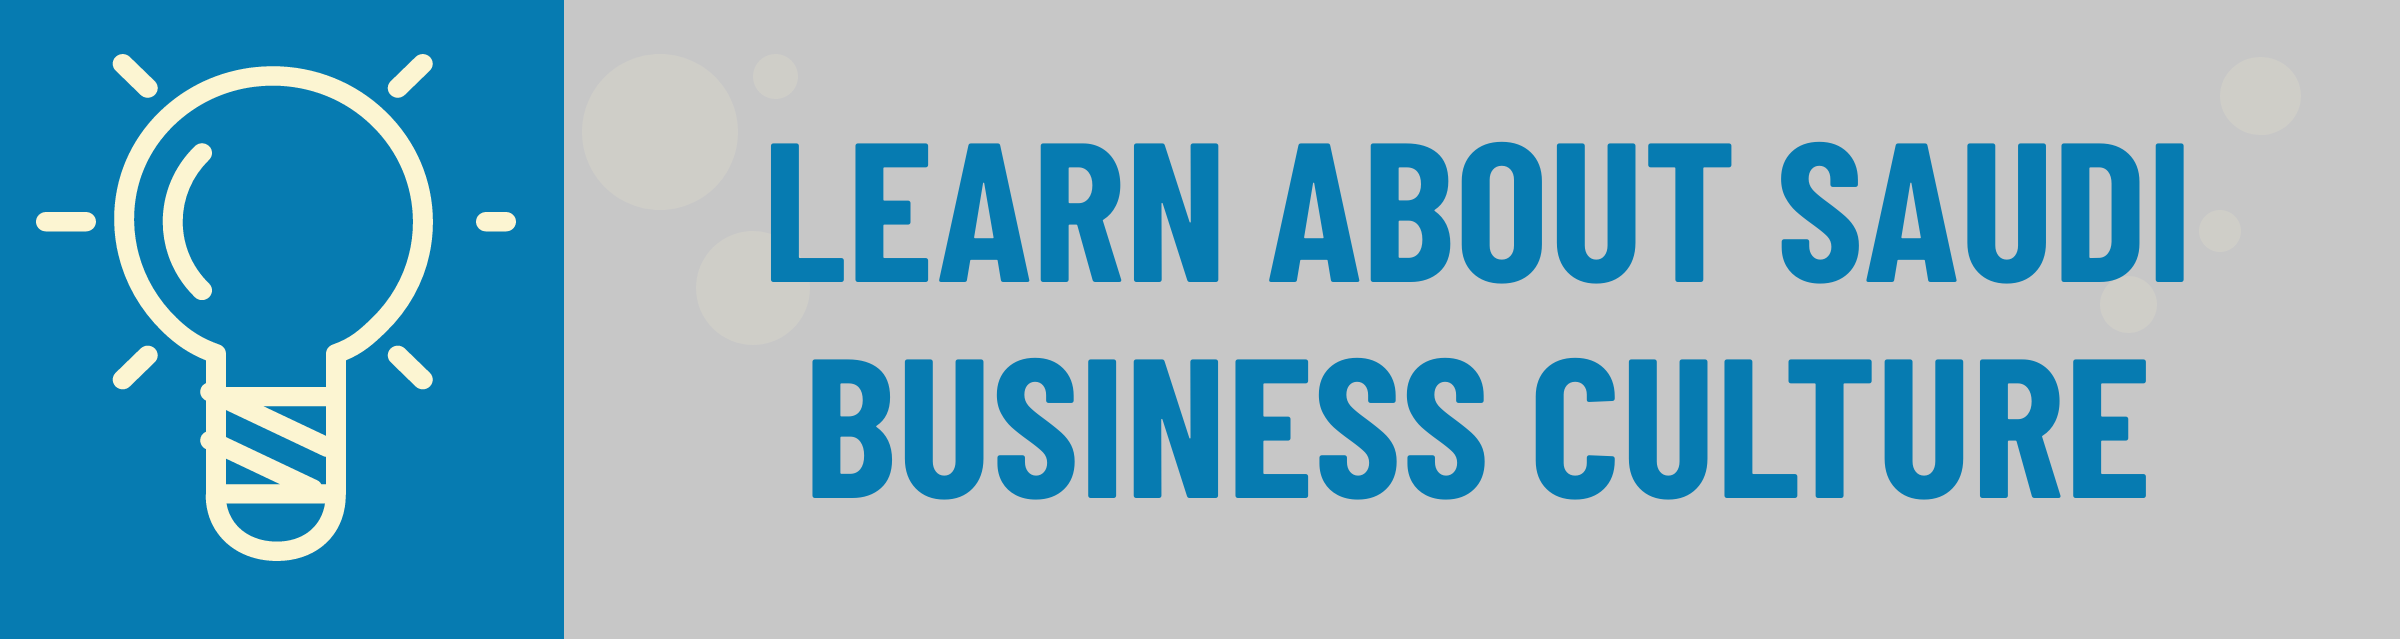 Banner: Learn About Saudi Business Culture